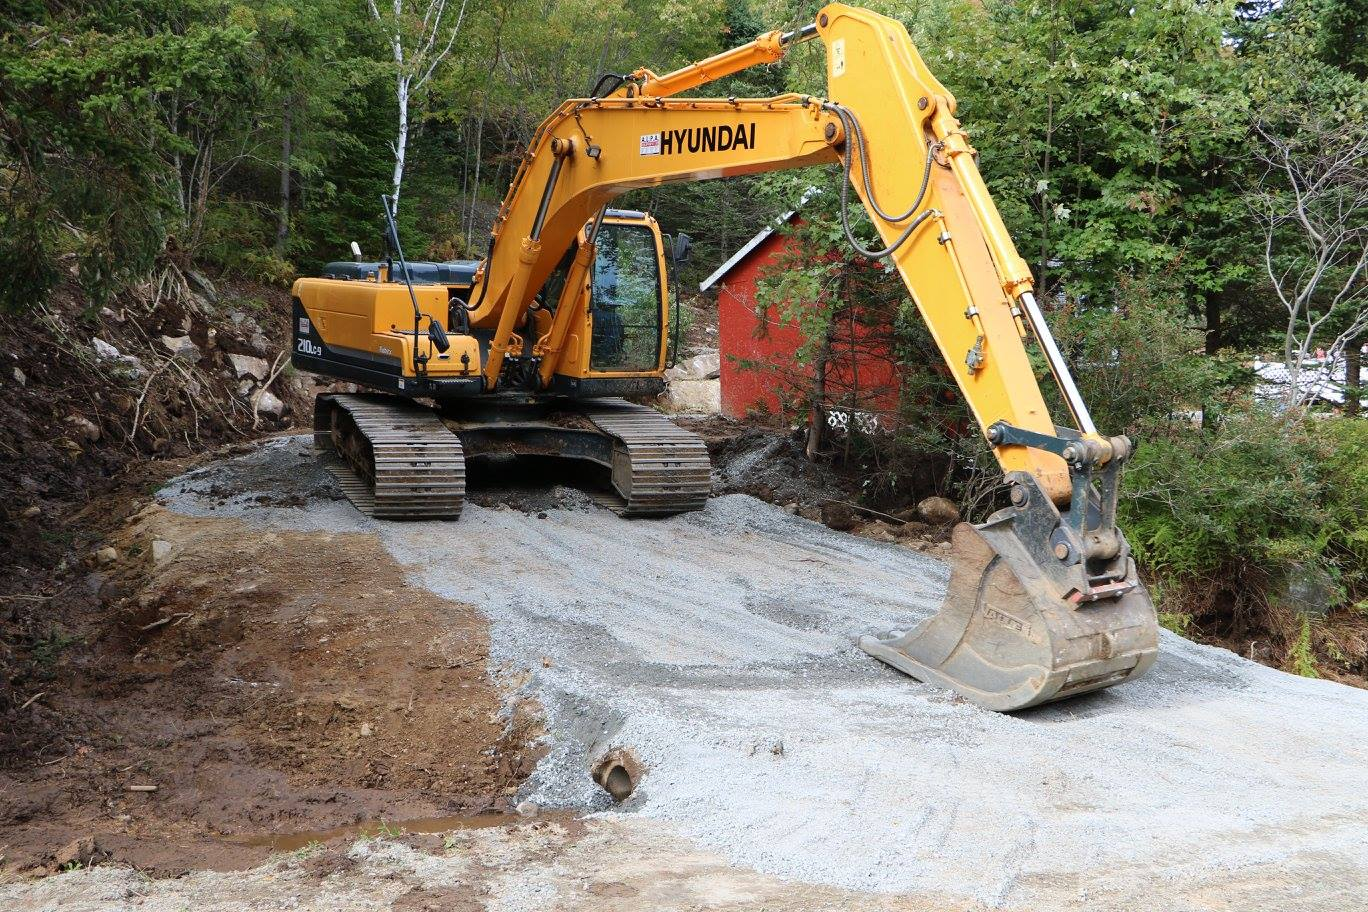 Big Dig Excavating - Call today to take advantage of our Spring Sales!